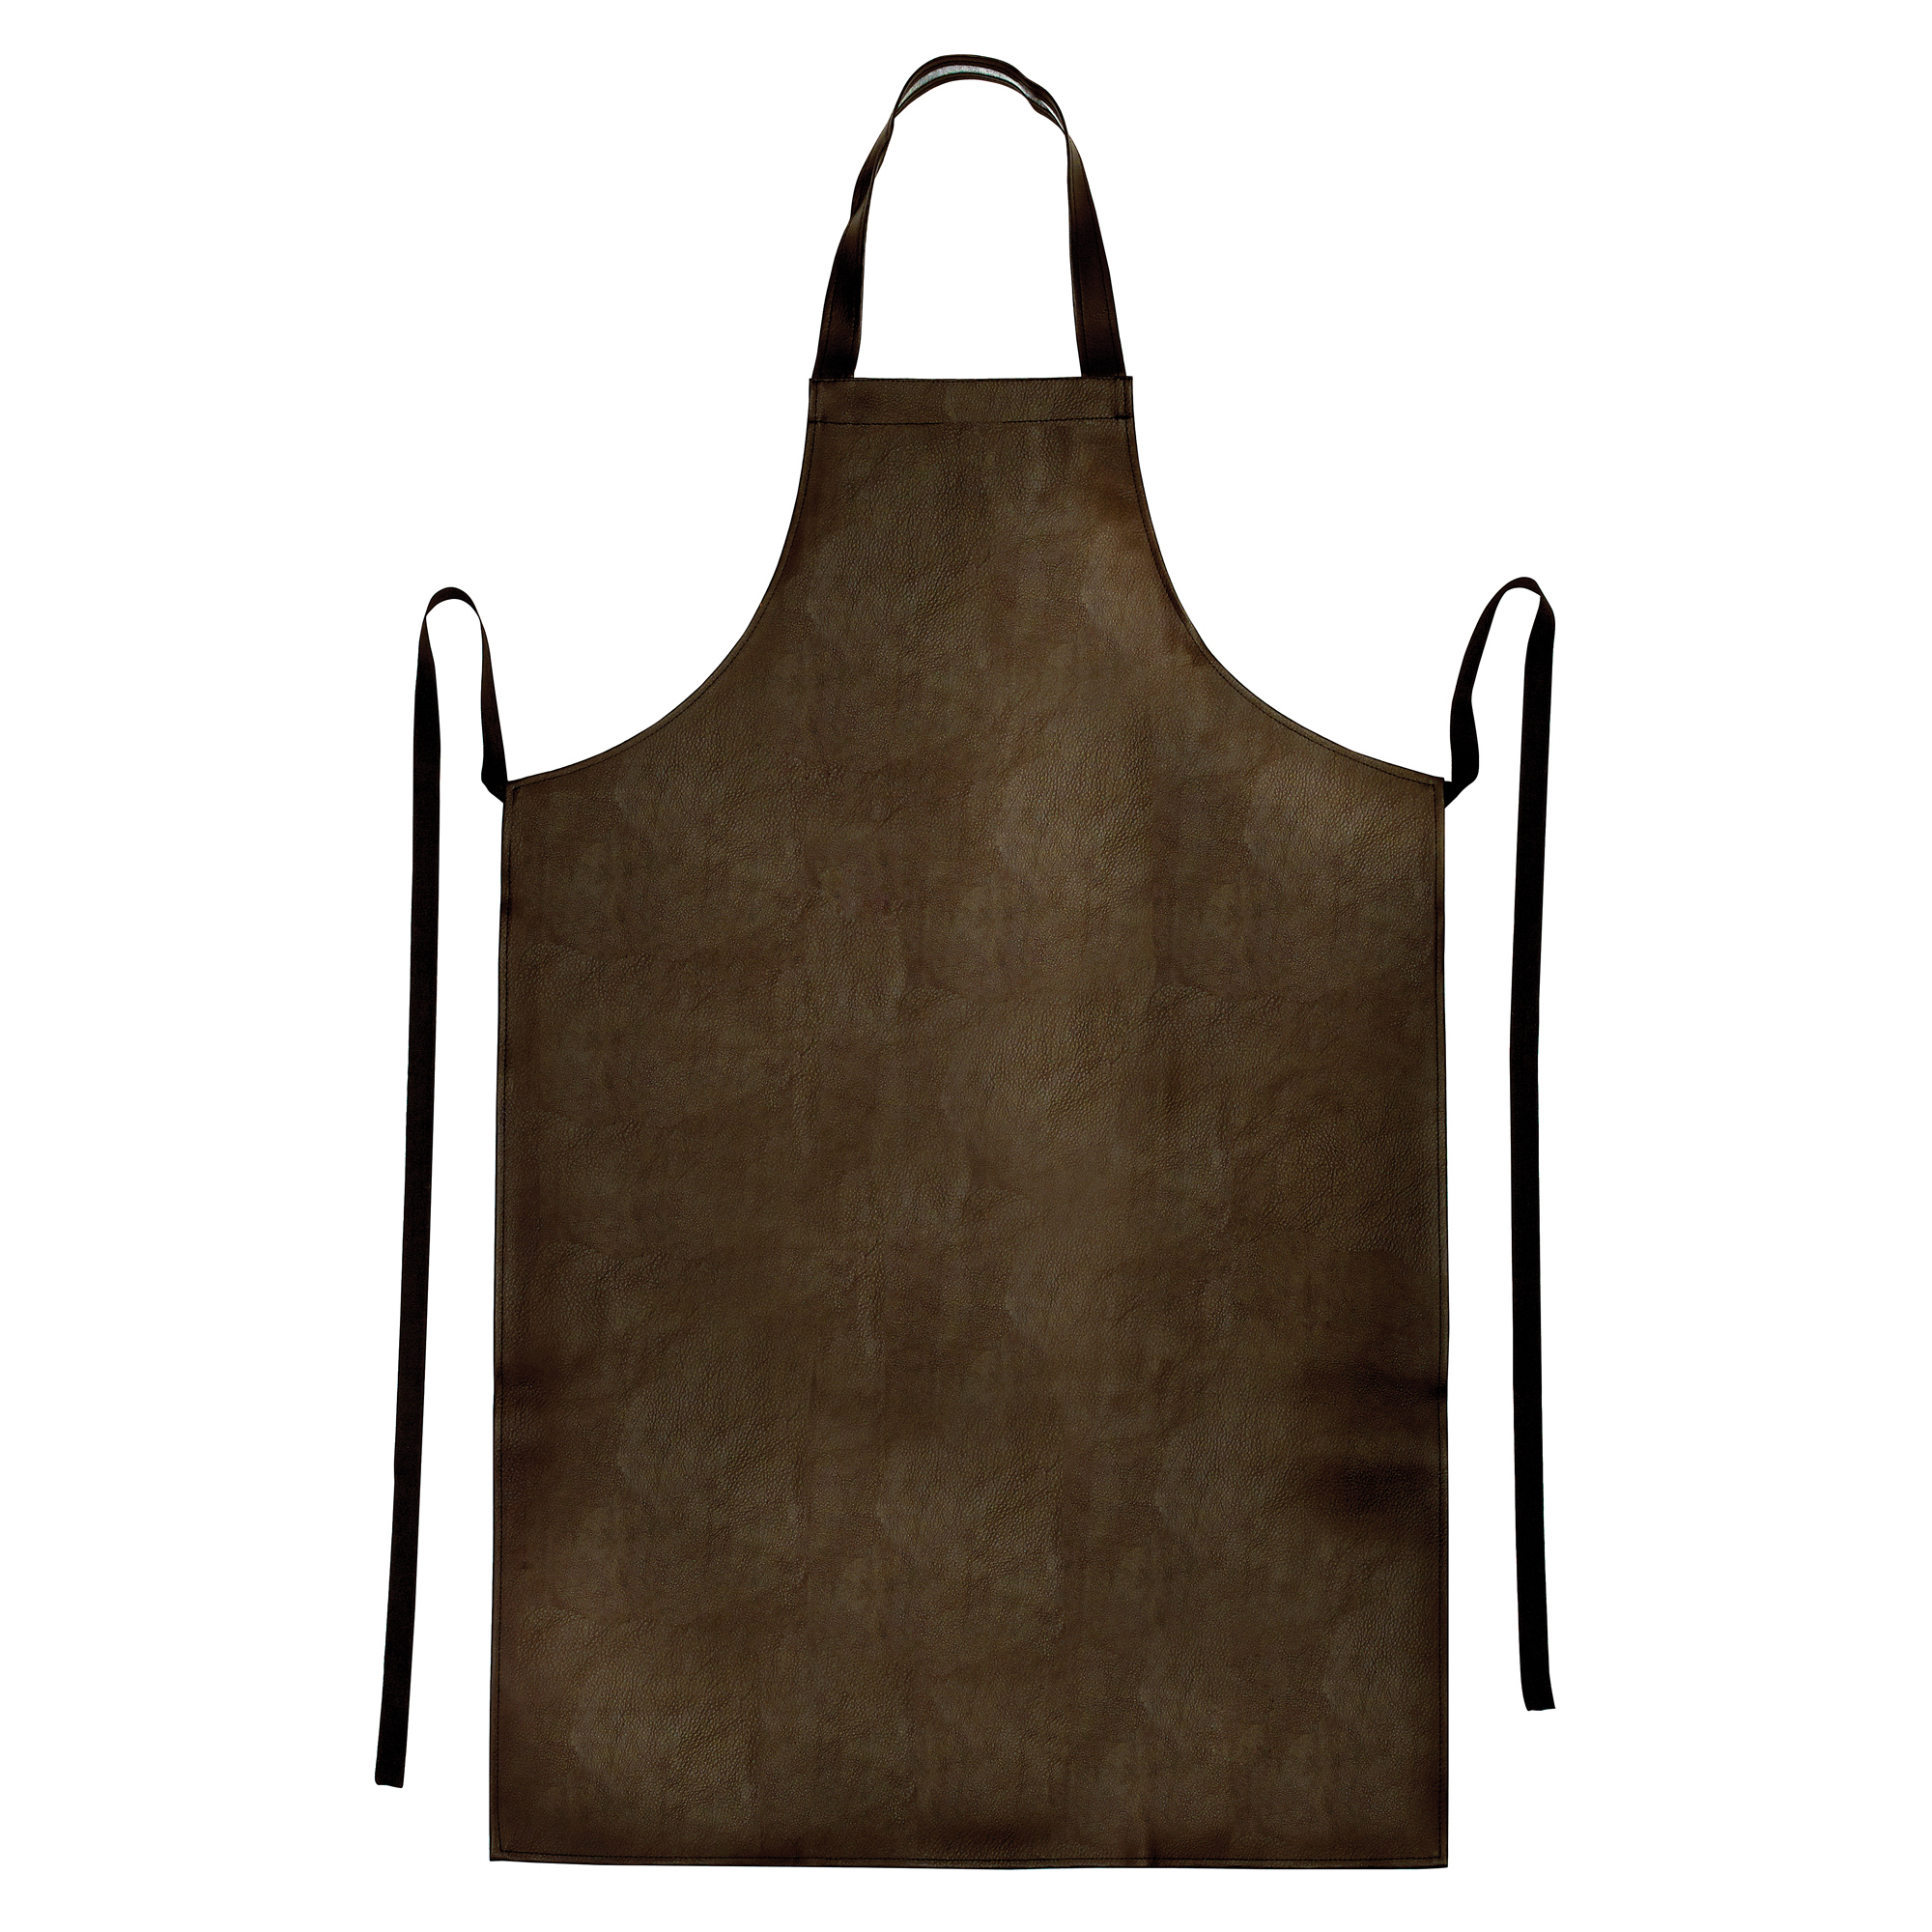 Winco BAW-2740BN dishwashing apron